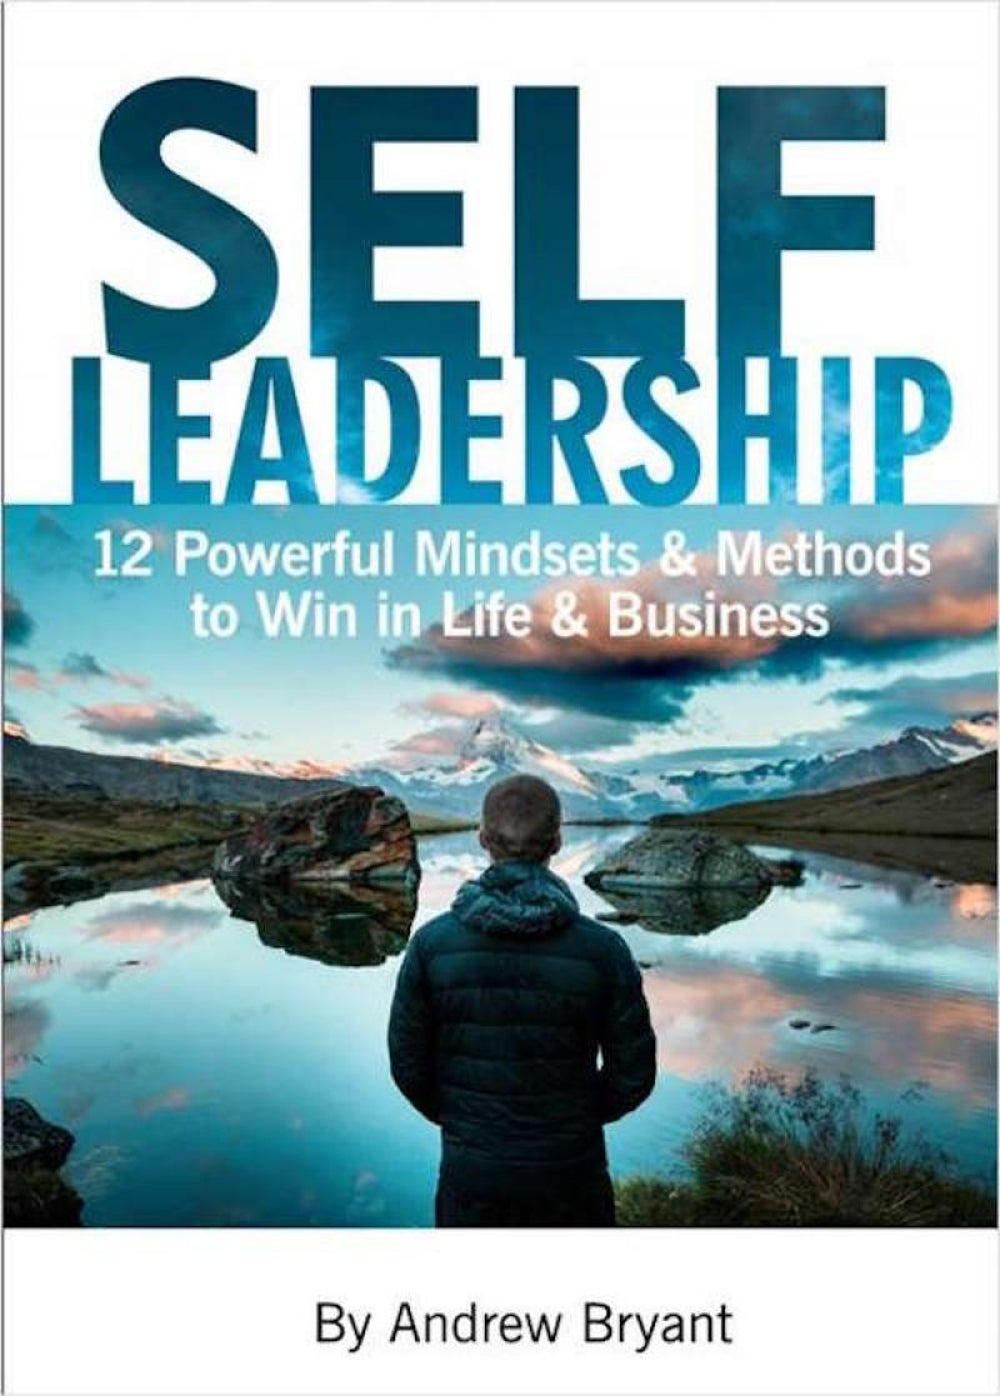 Self Leadership – 12 Powerful Mindsets & Methods to Win in Life & Business